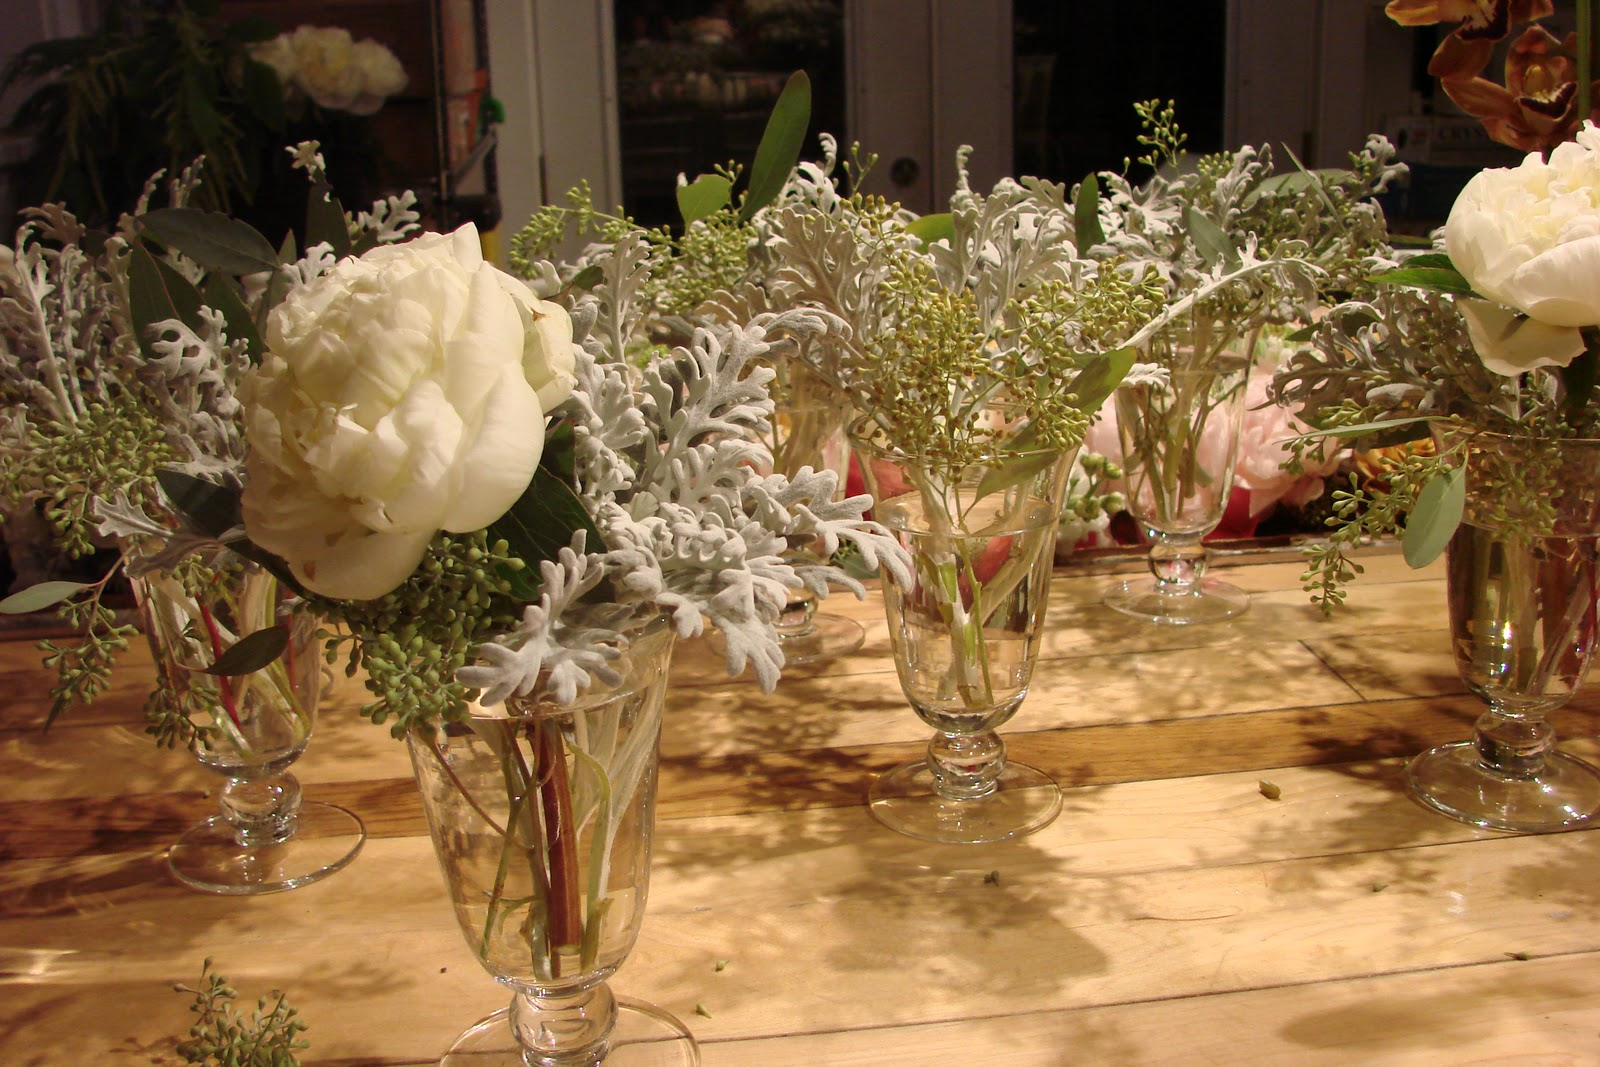 New years eve wedding emily herzig floral studio centerpieces in progress at the eh floral studio reviewsmspy